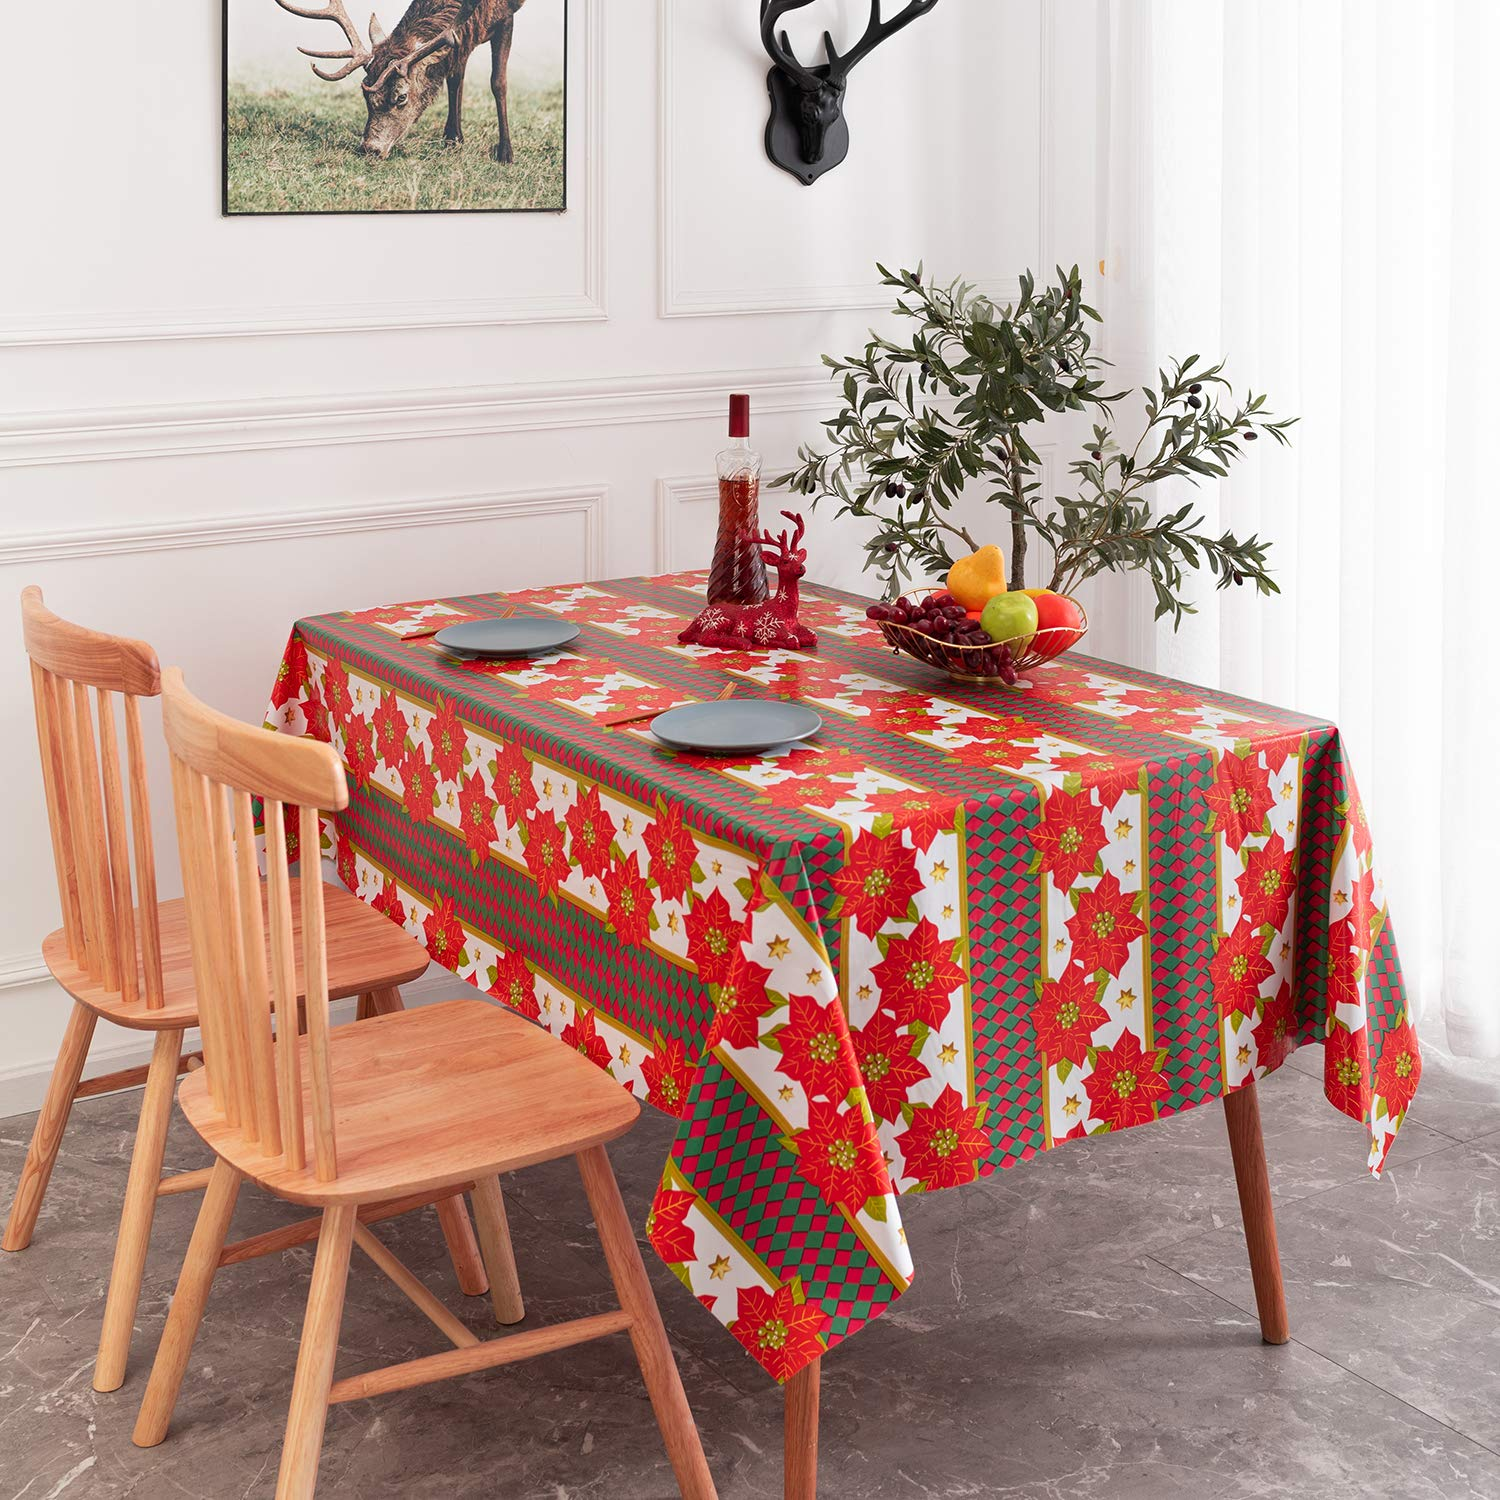 sancua Rectangle PVC Christmas Tablecloth - 60 x 84 Inch - 100% Waterproof Oil Spill Proof Floral Pattern Holiday Vinyl Table Cloth, Wipe Clean Table Cover for Dining Table, Buffet Parties